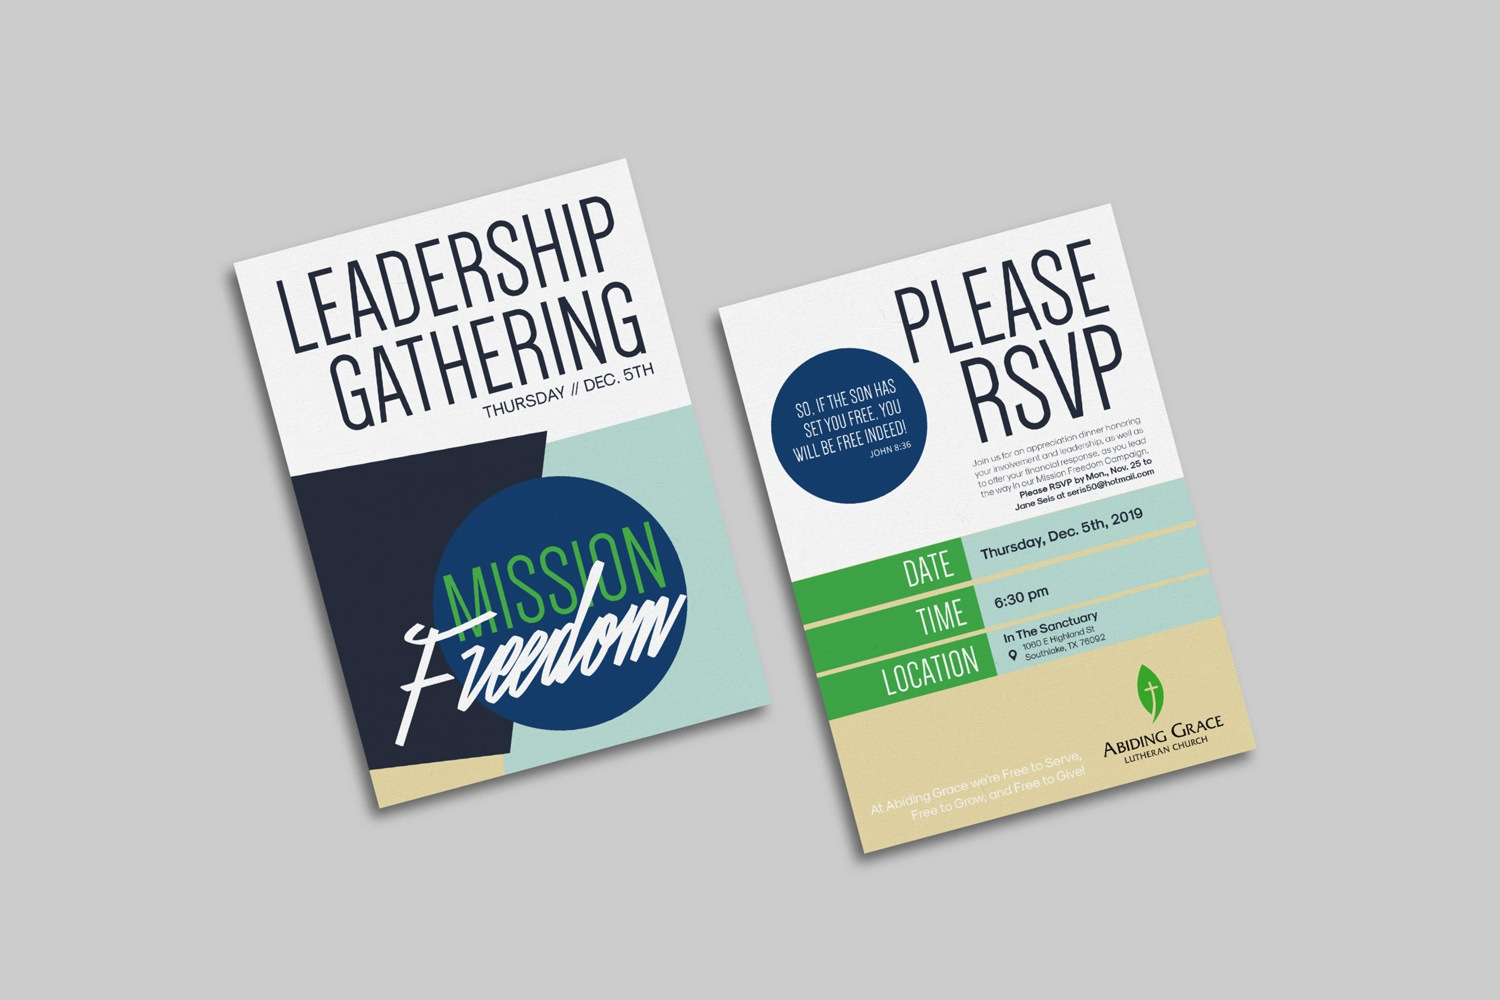 Large 5 x 7 in. Vertical invitations for Church Capital Campaigns by Abstract Union in Lincoln, NE